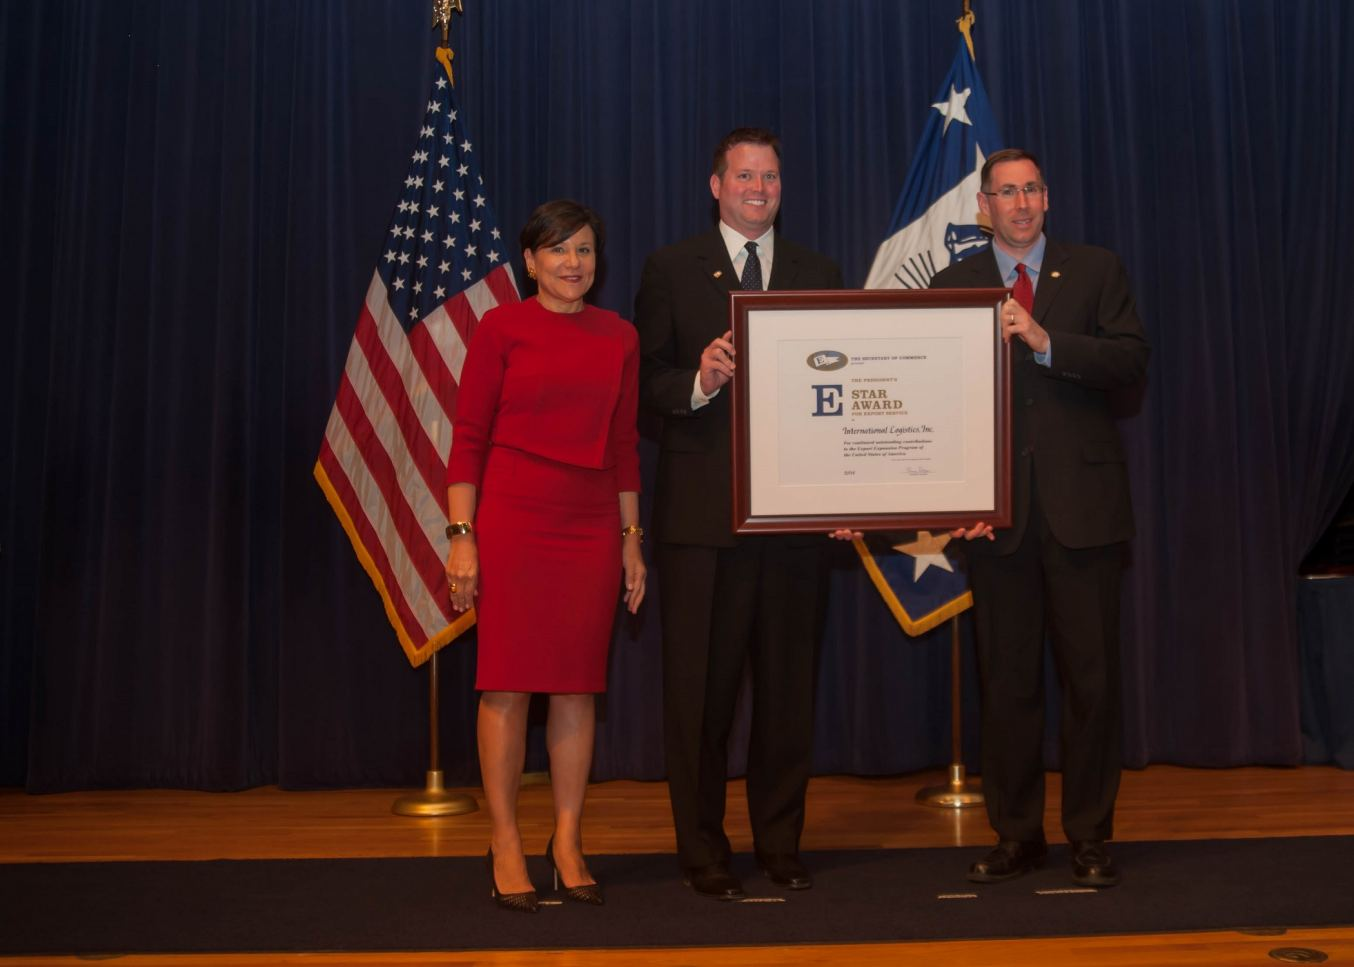 U.S. Secretary of Commerce Penny Pritzker,Patrick Hastings, Ryan Stowe